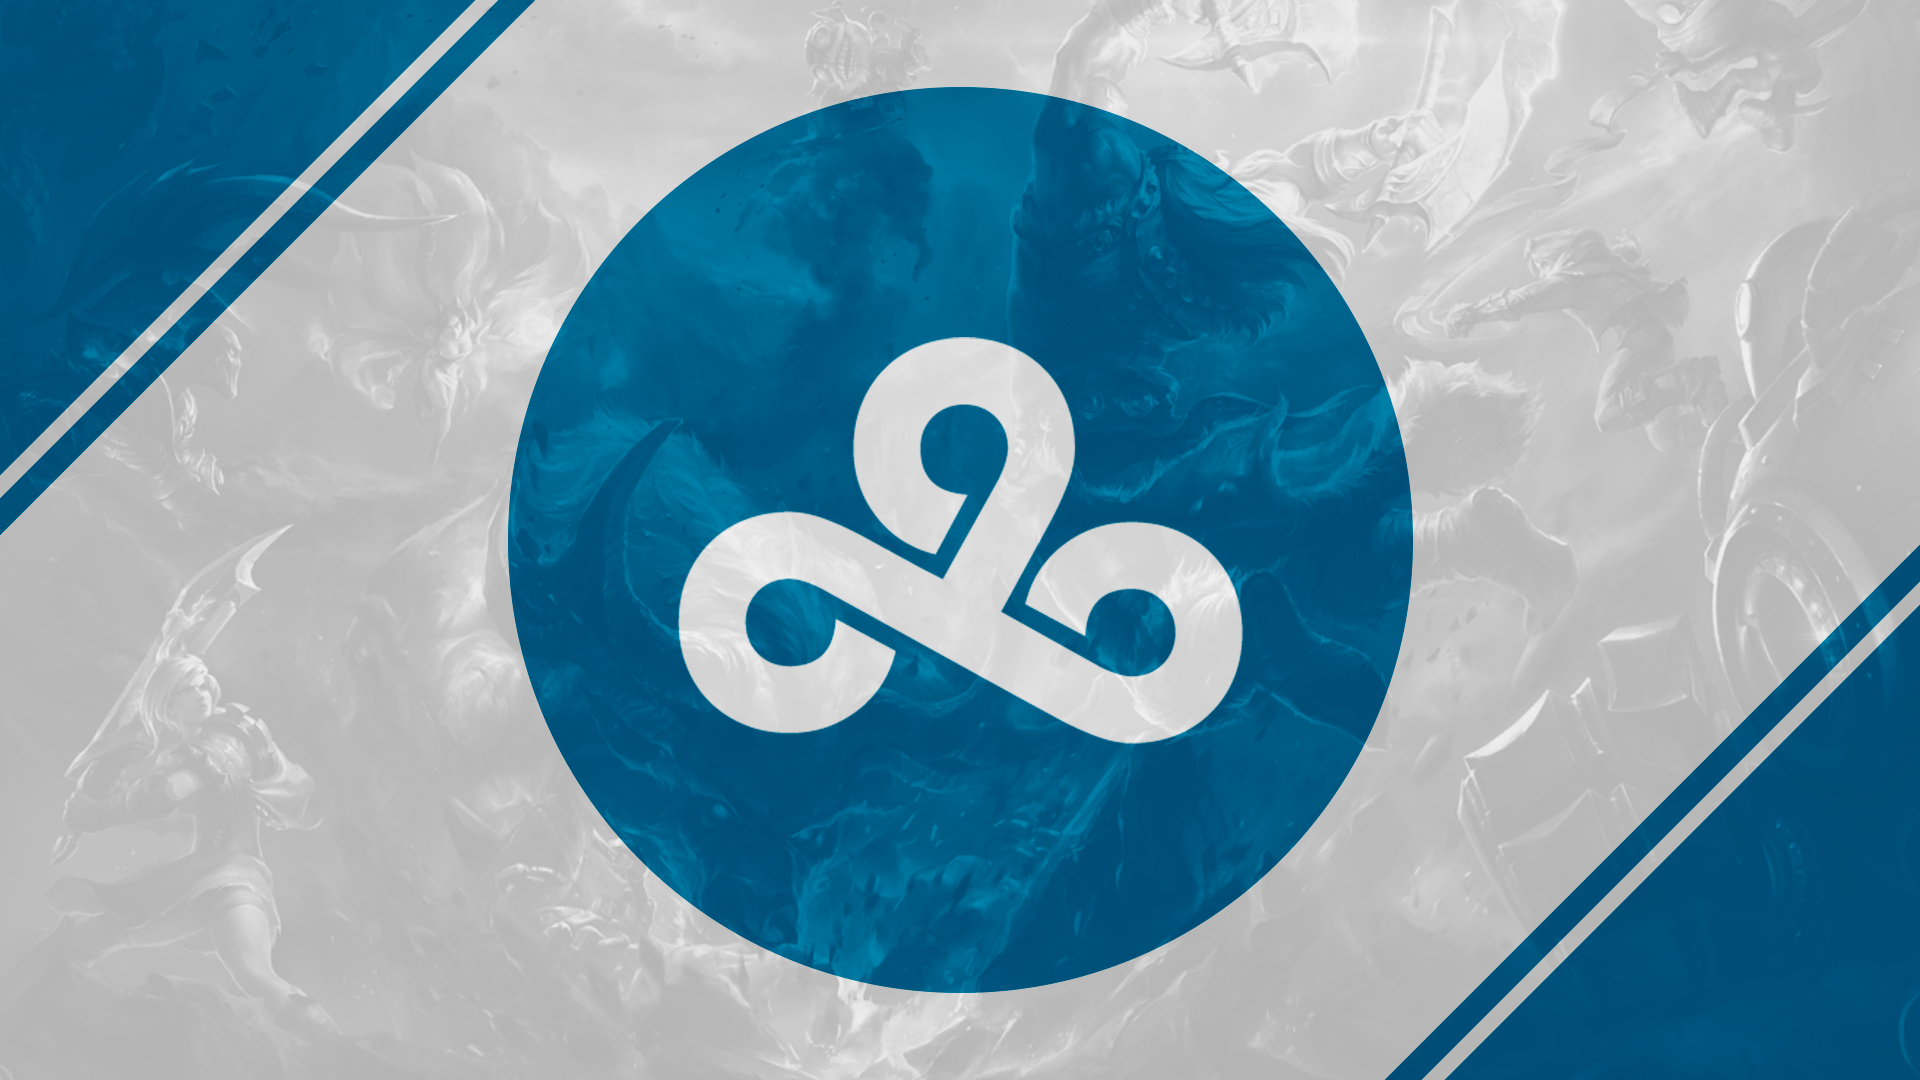 Cloud 9 v2 wallpaper